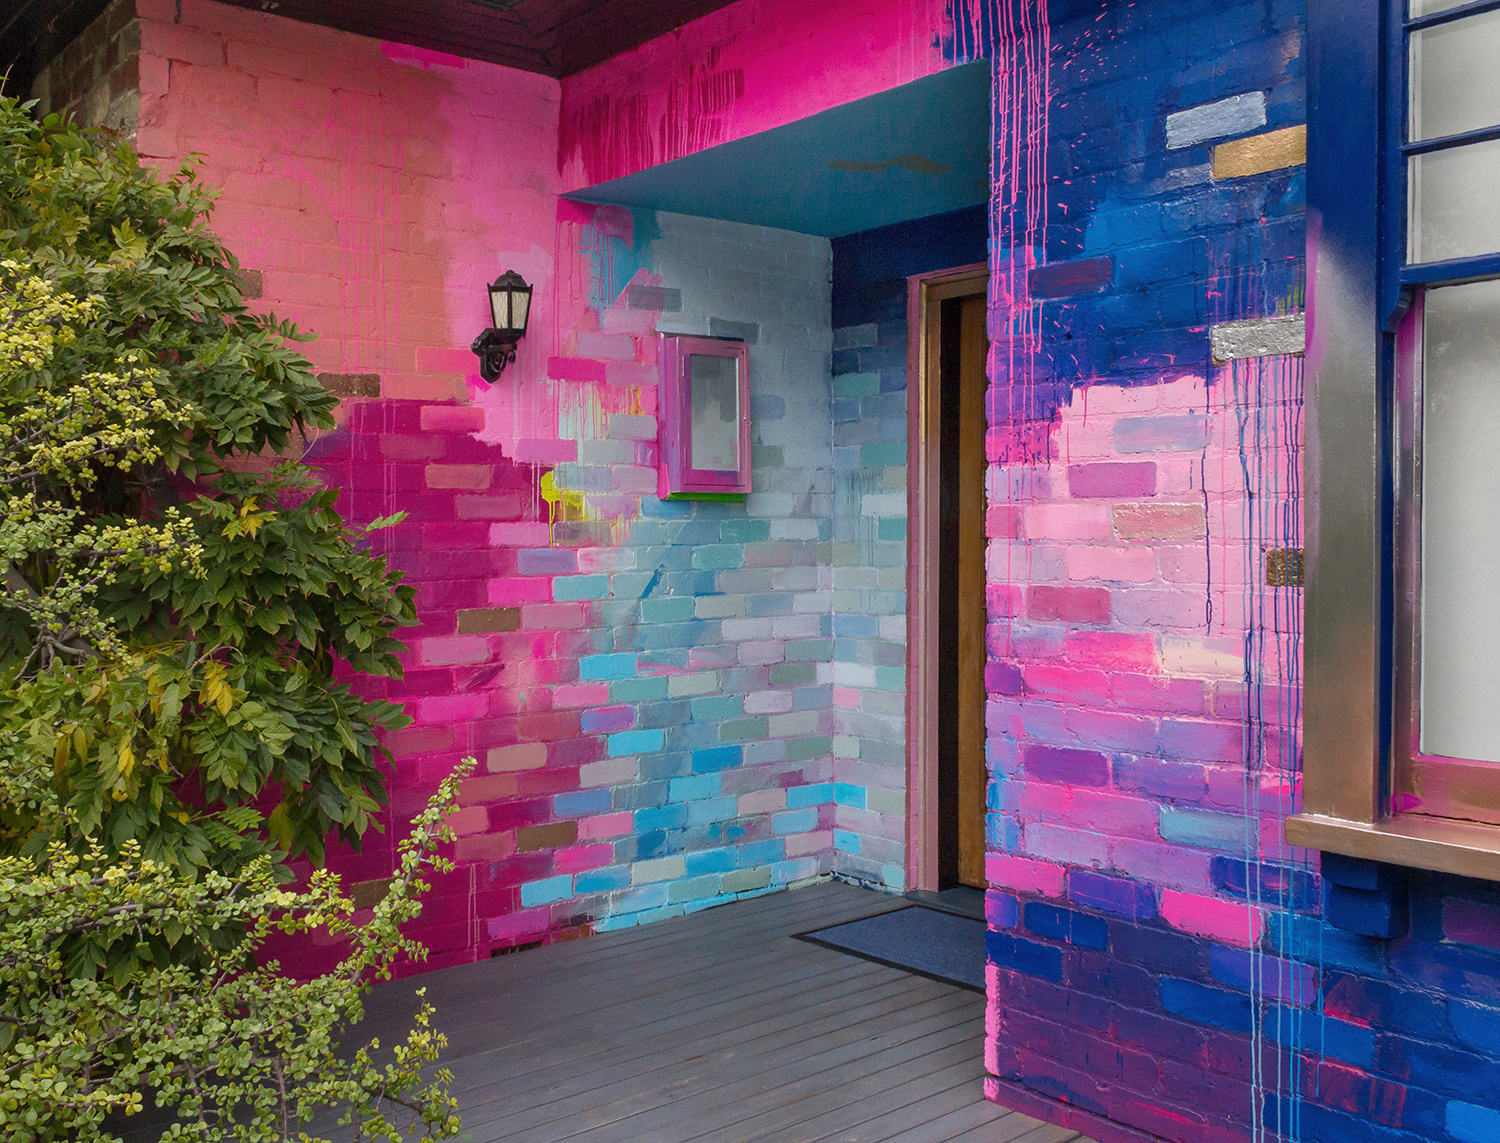 Vibrant abstract exterior mural that covers a residential home with a bright color palette of mostly pink, blue and metallic. Pops of color highlight the bricks and create a sense of movement that leads the eye around the outdoor canvas. Green foliage provides contrast to the bright color palette.